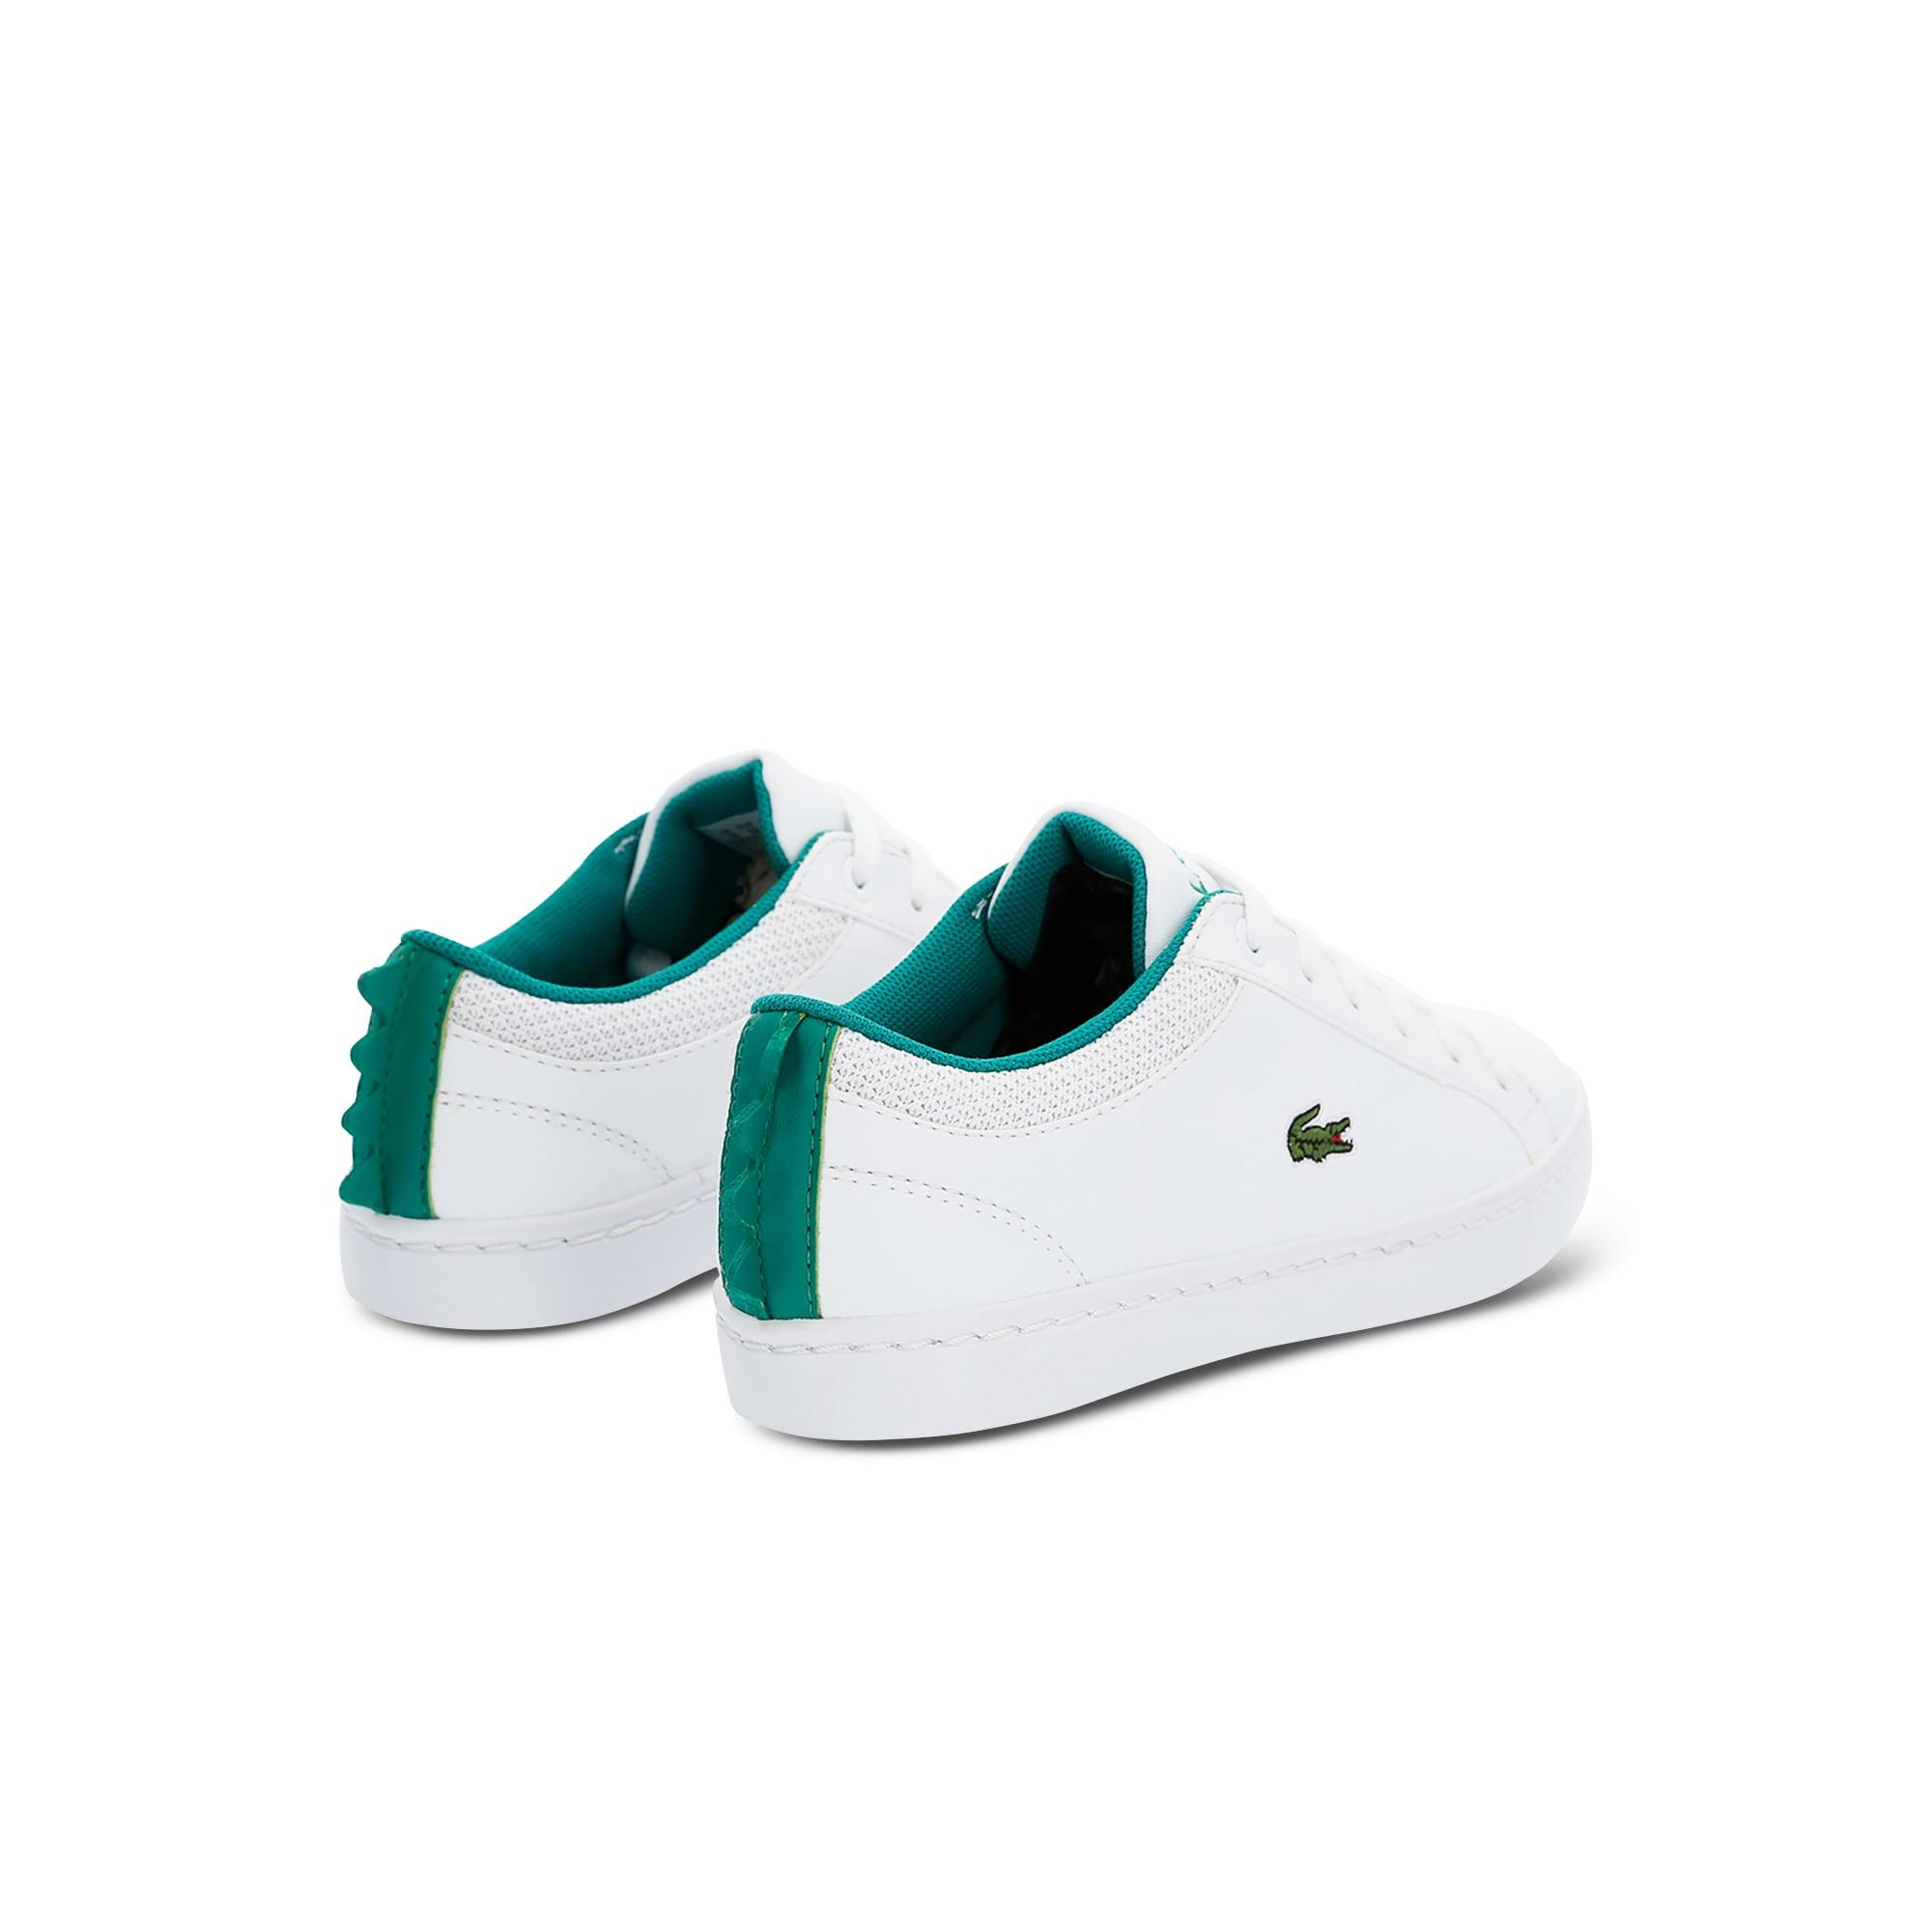 526d89a9f3 Women's White Children's Straightset Synthetic Sneakers